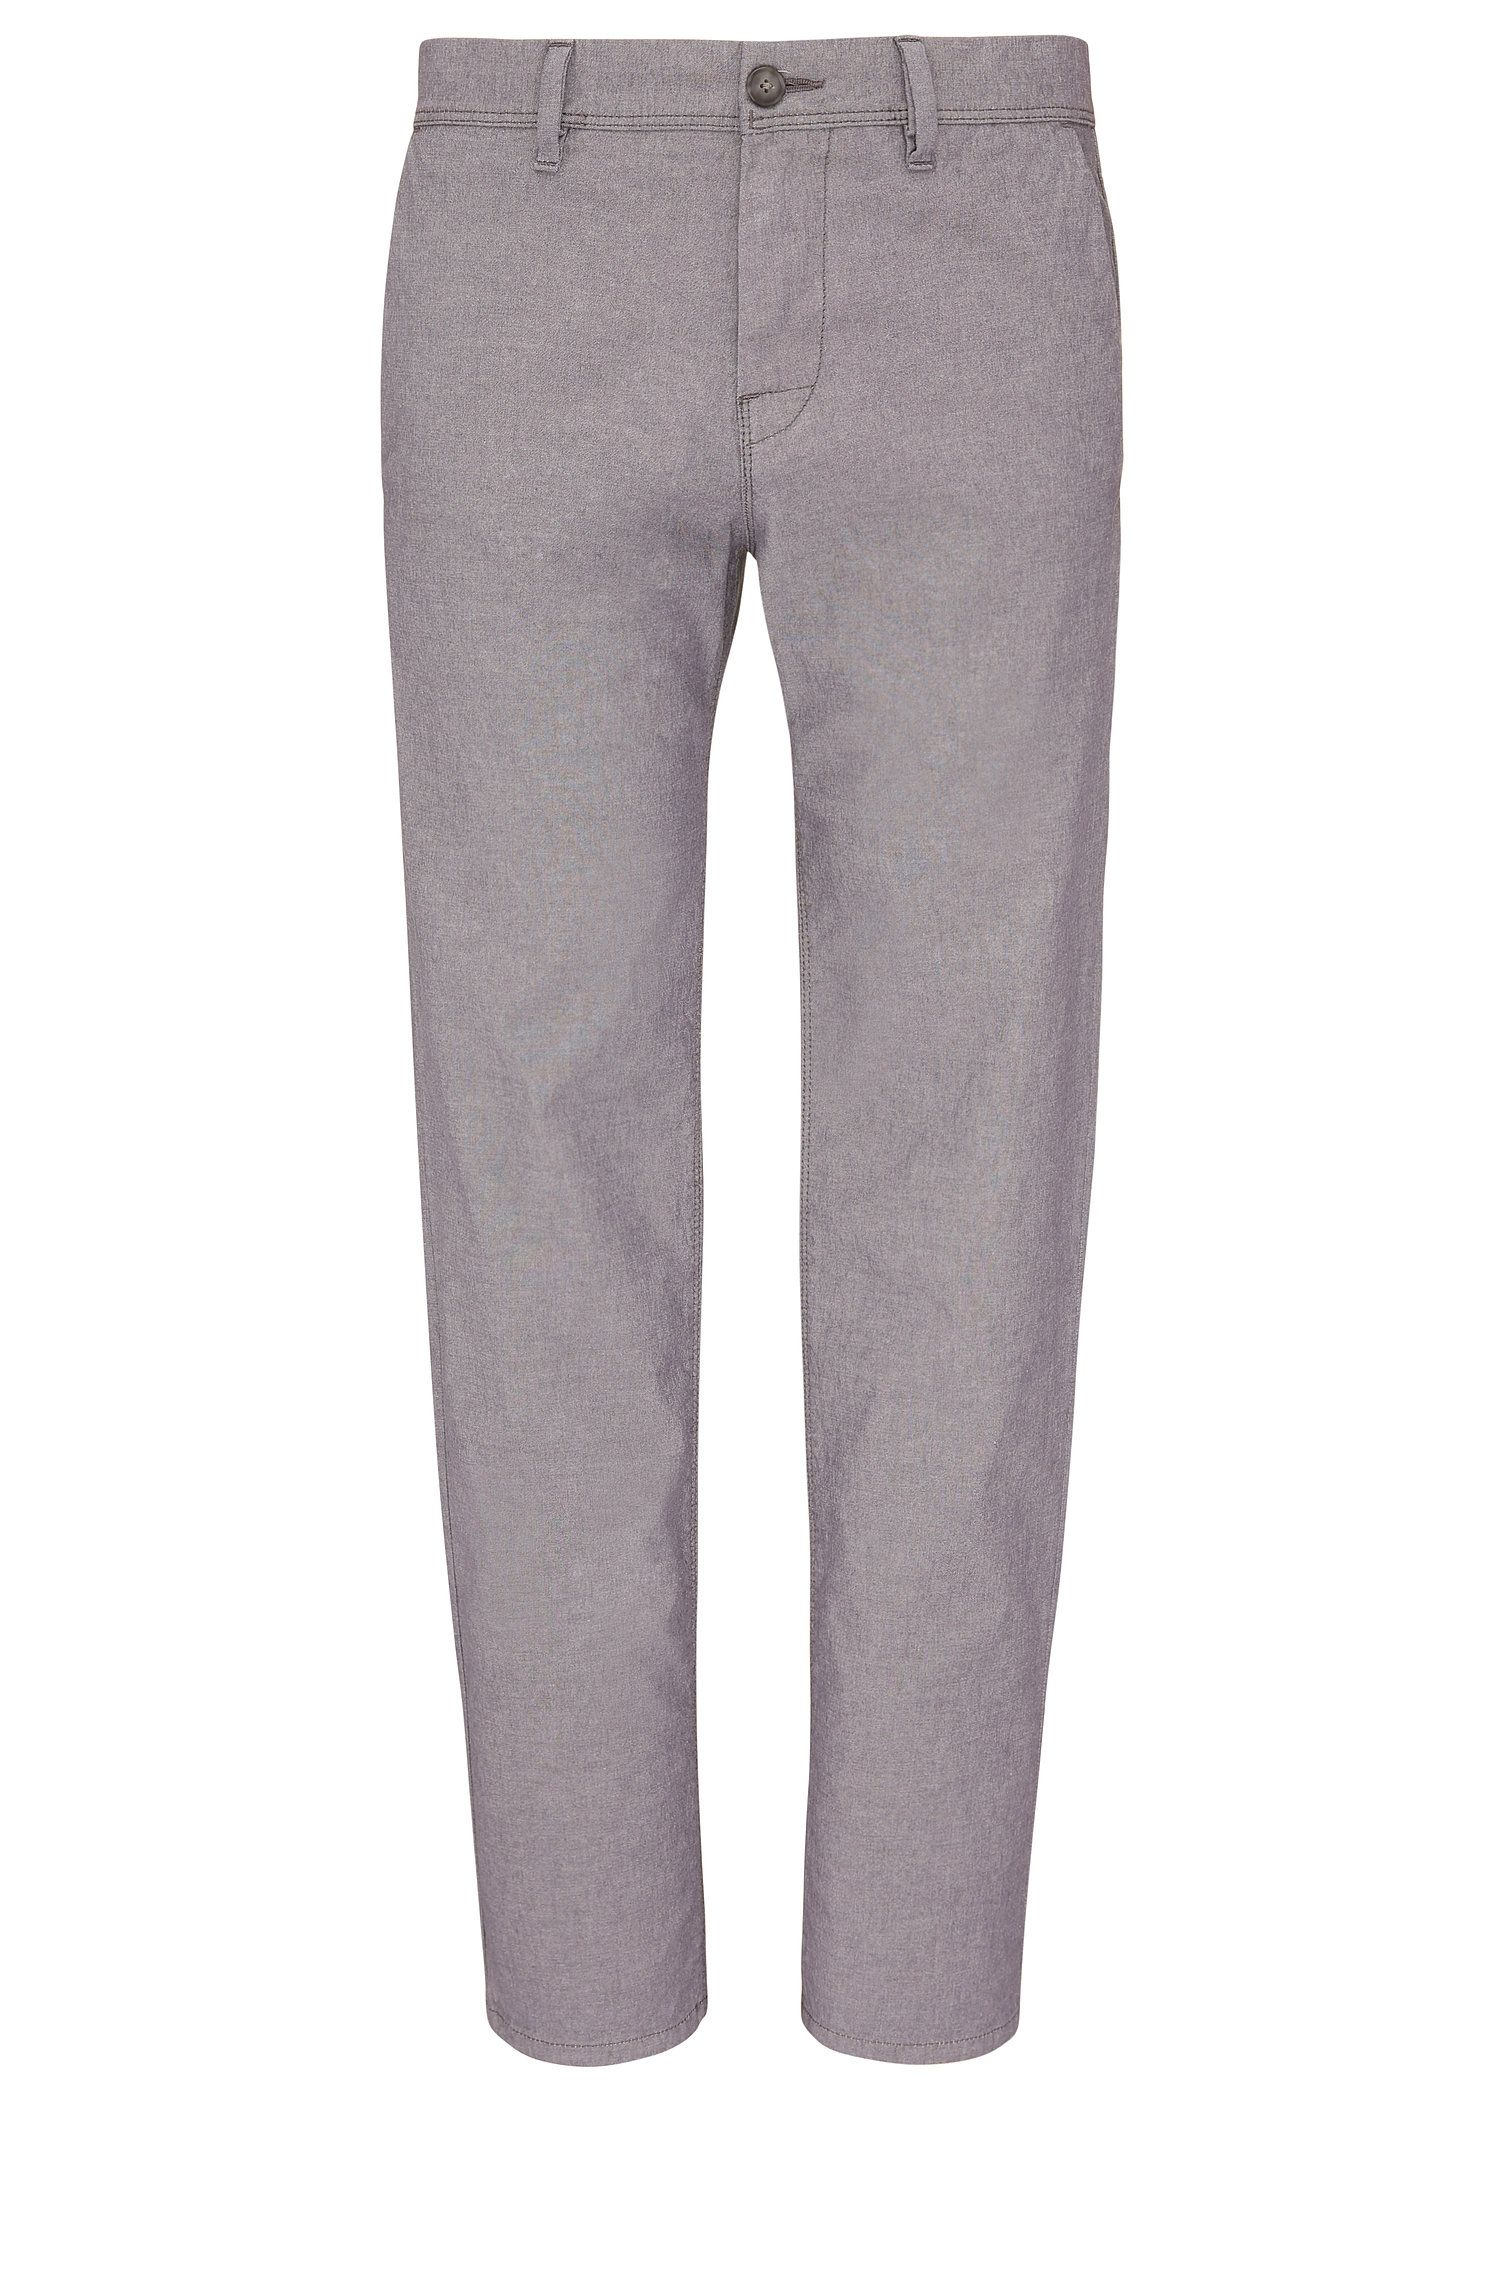 Stretch Cotton Trousers, Tapered Fit | Stapered W